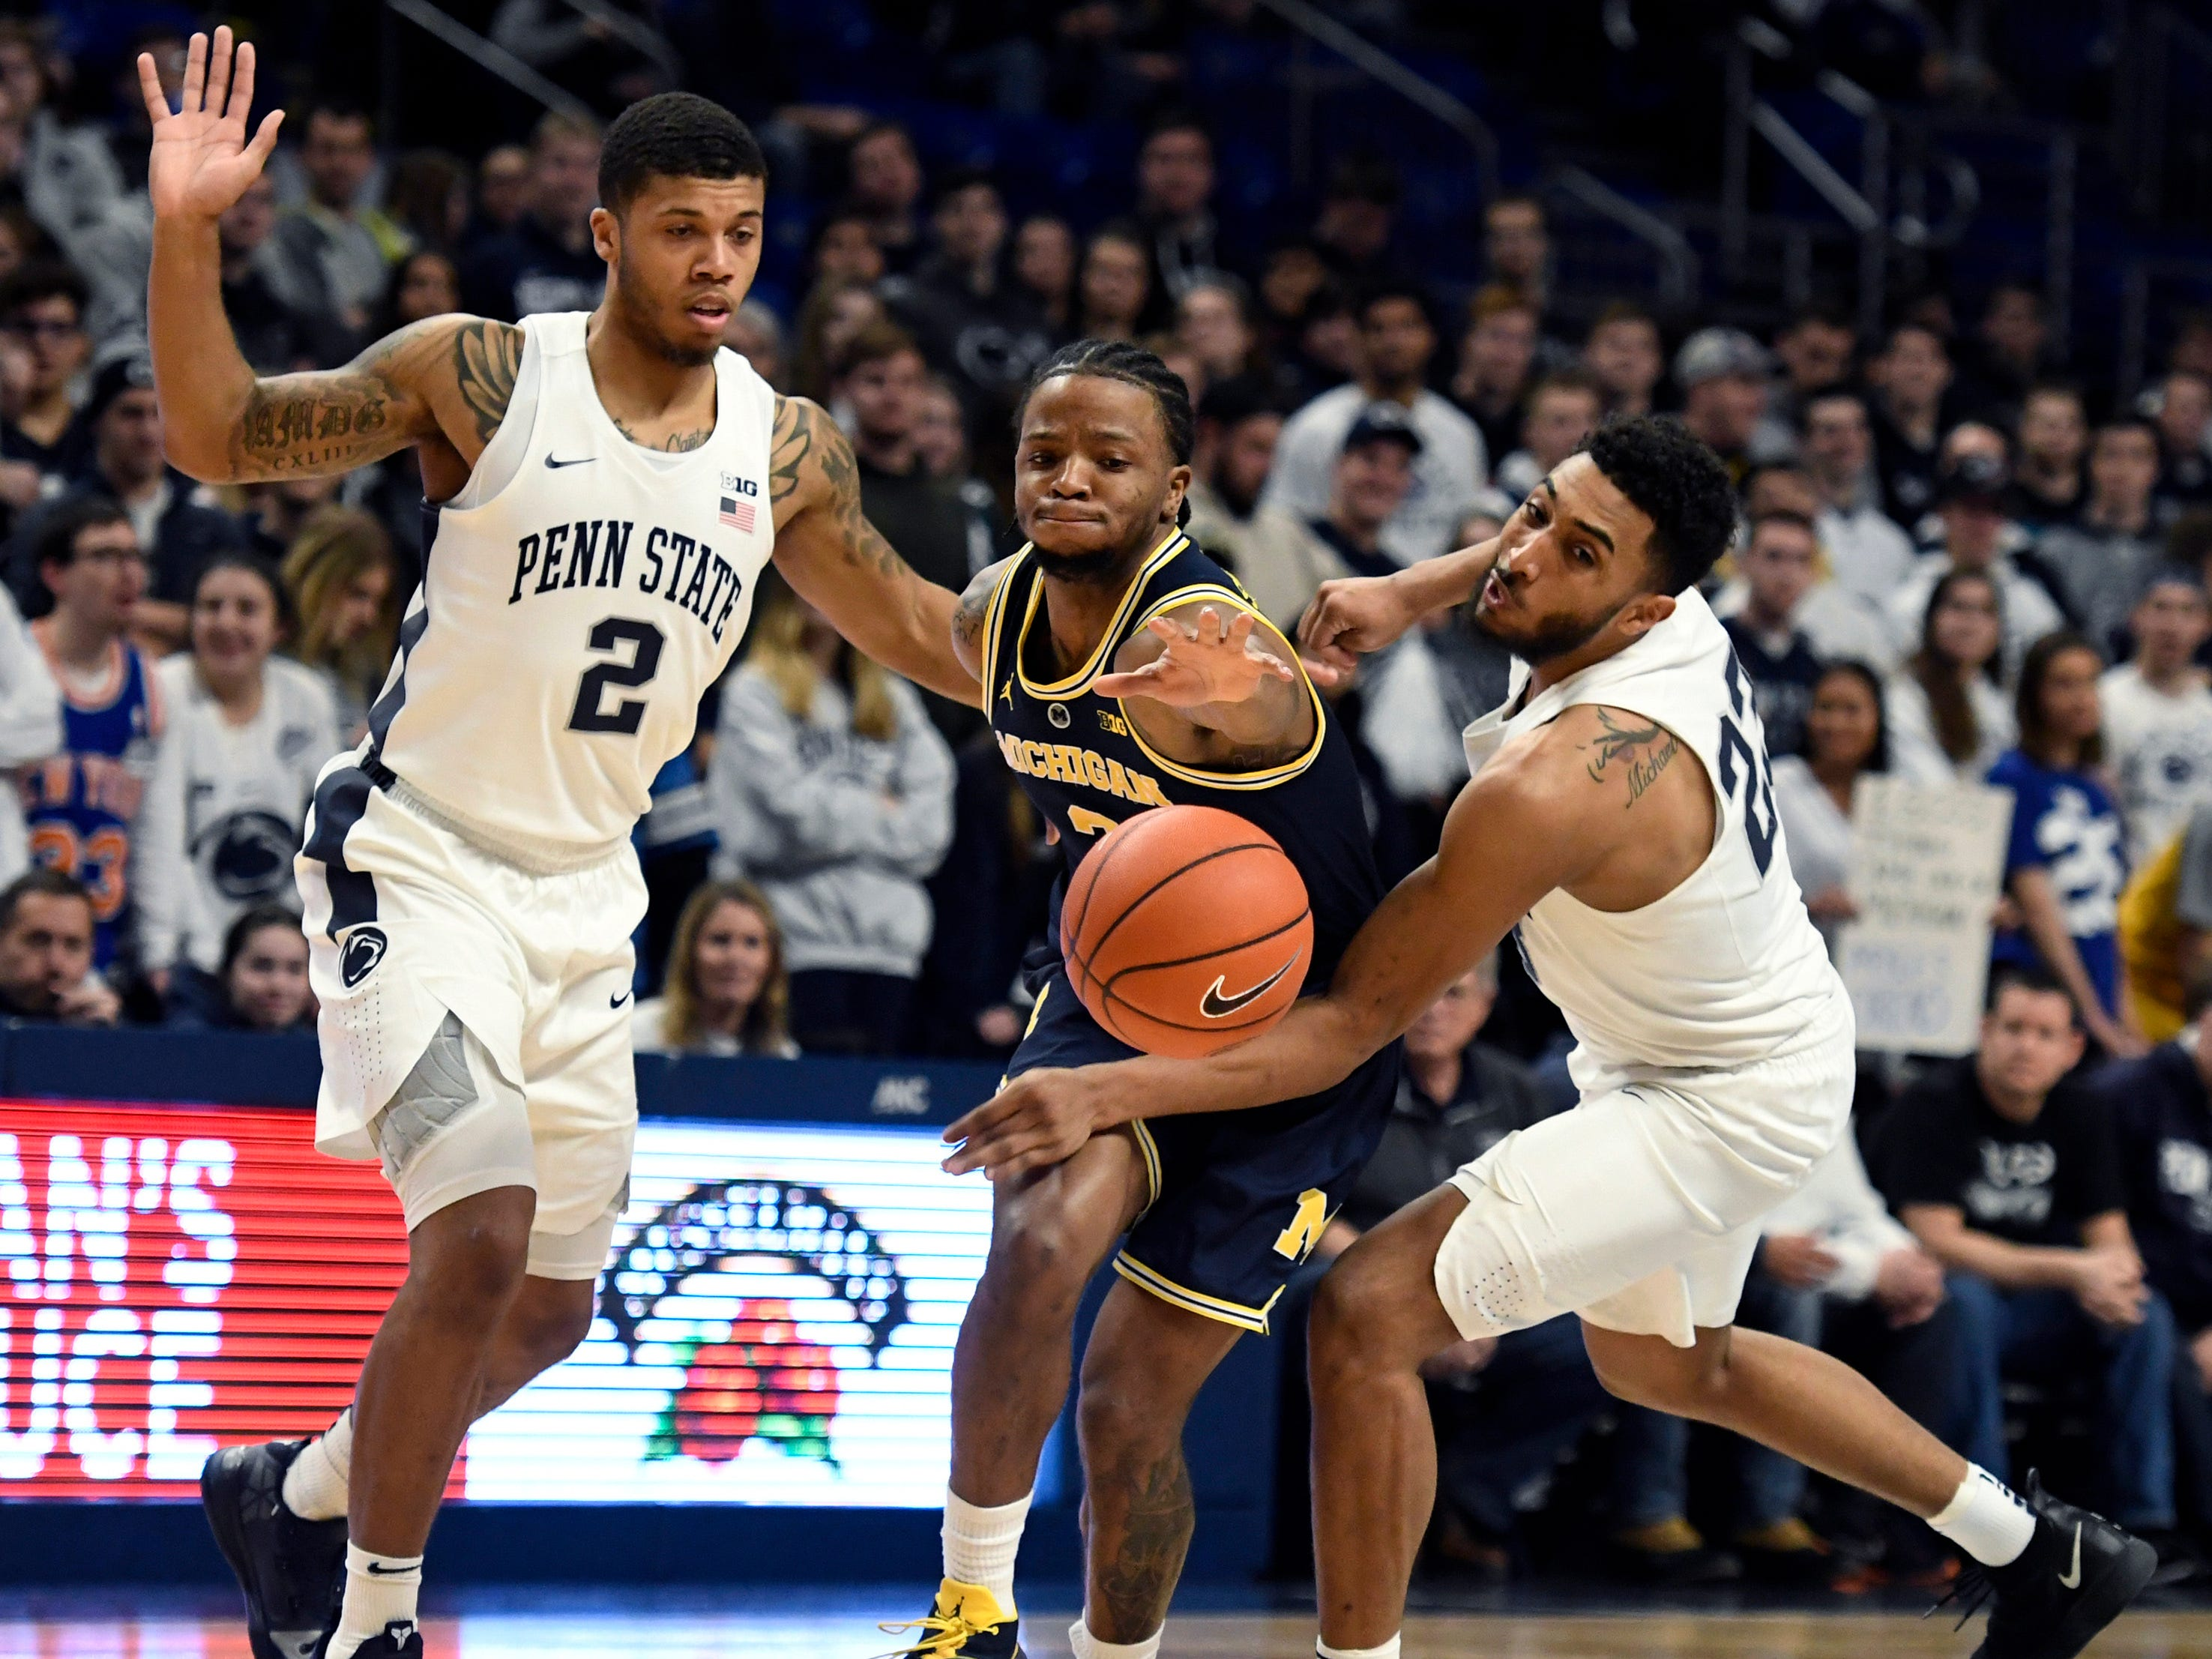 Penn State guard Myles Dread (2) and Penn State guard Josh Reaves (23) try to get the ball away from Michigan guard Zavier Simpson (3) during the first half of an NCAA college basketball game, Tuesday, Feb. 12, 2019, in State College, Pa.